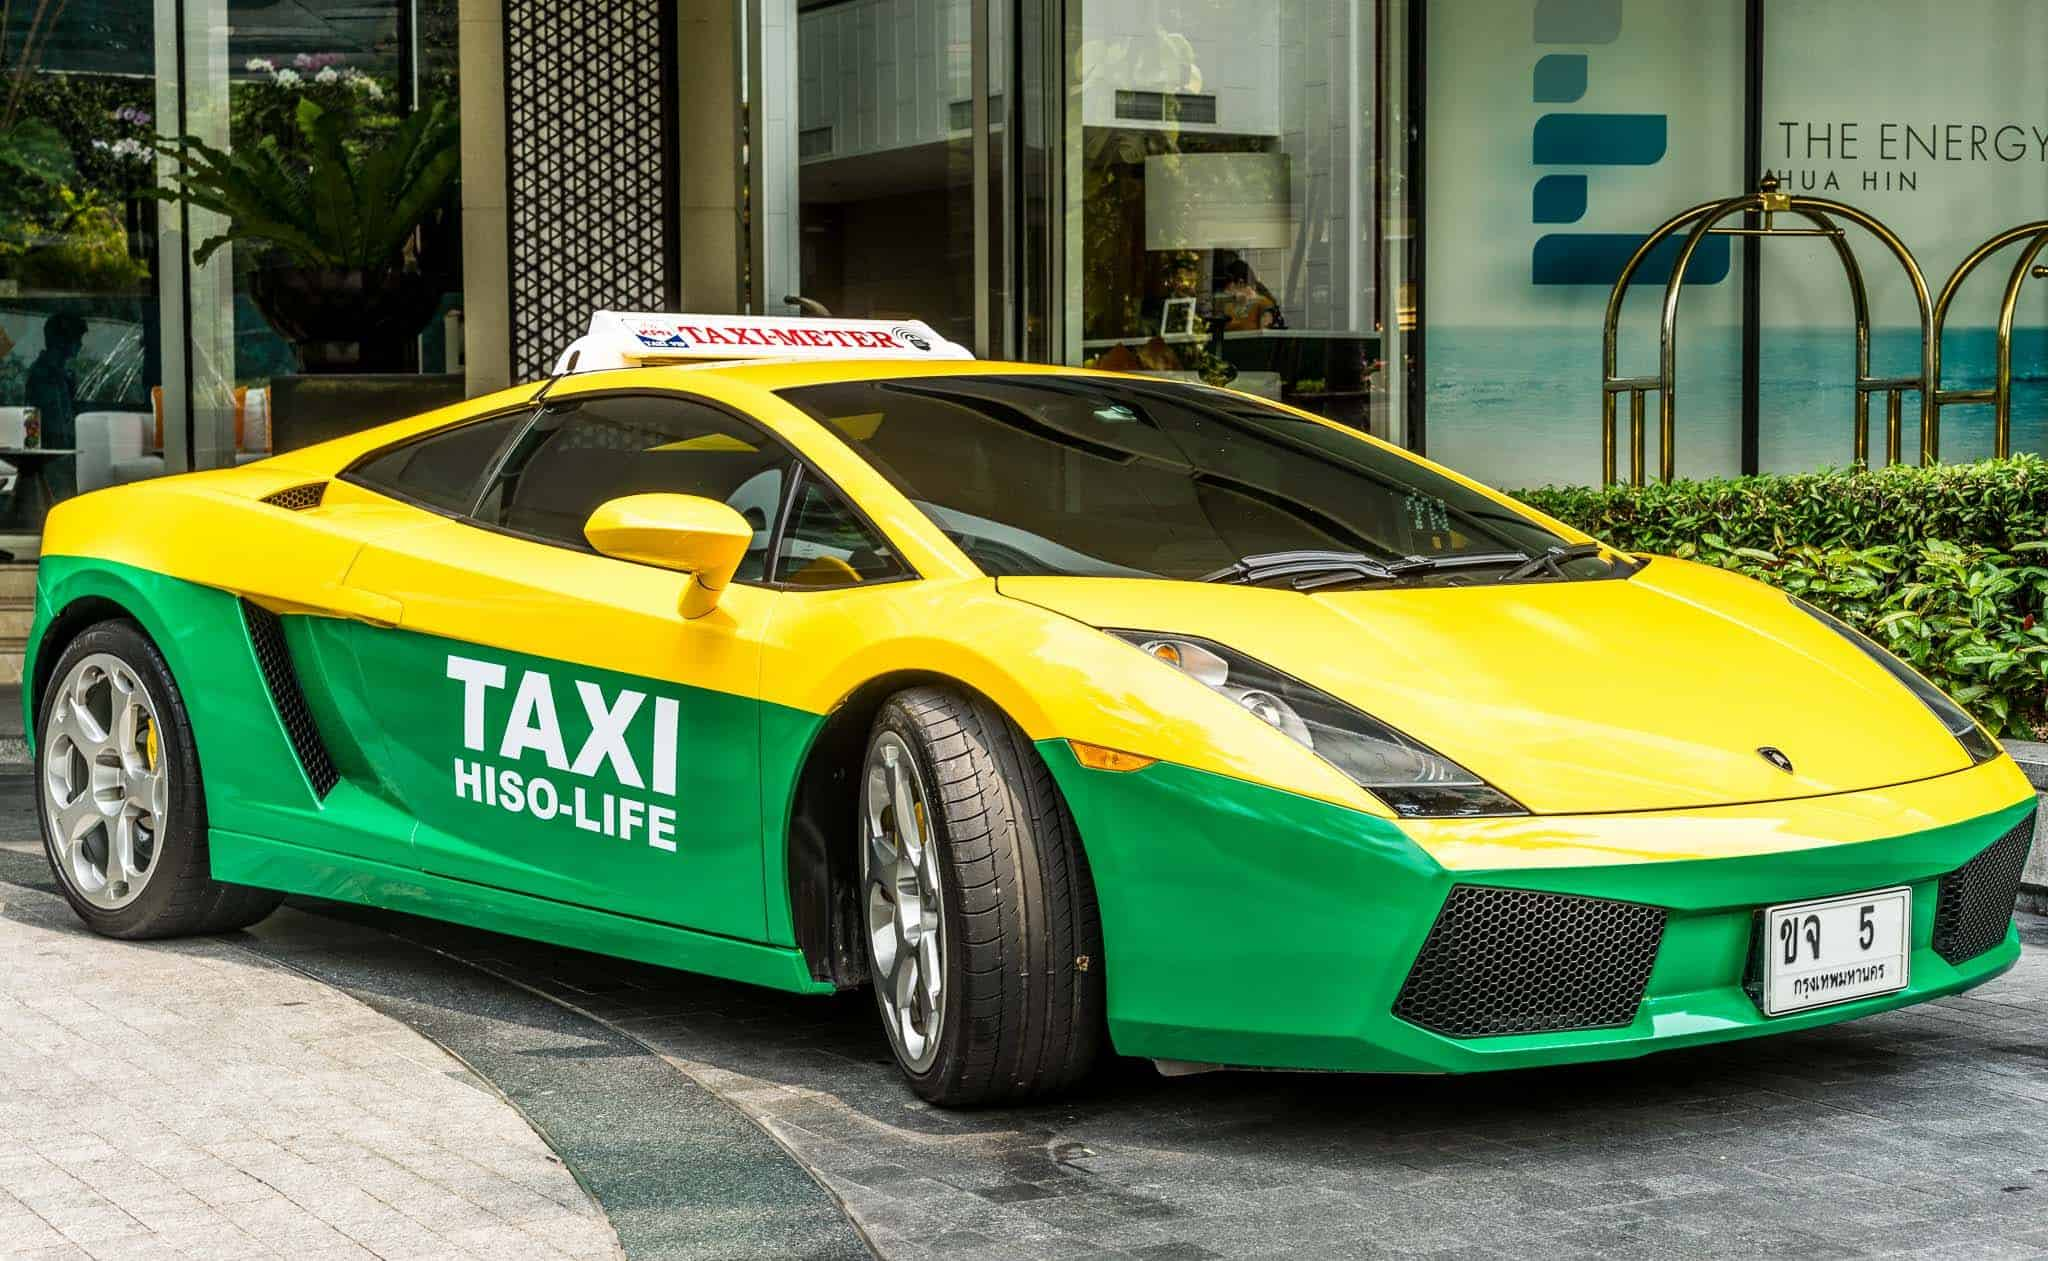 taxi_title1